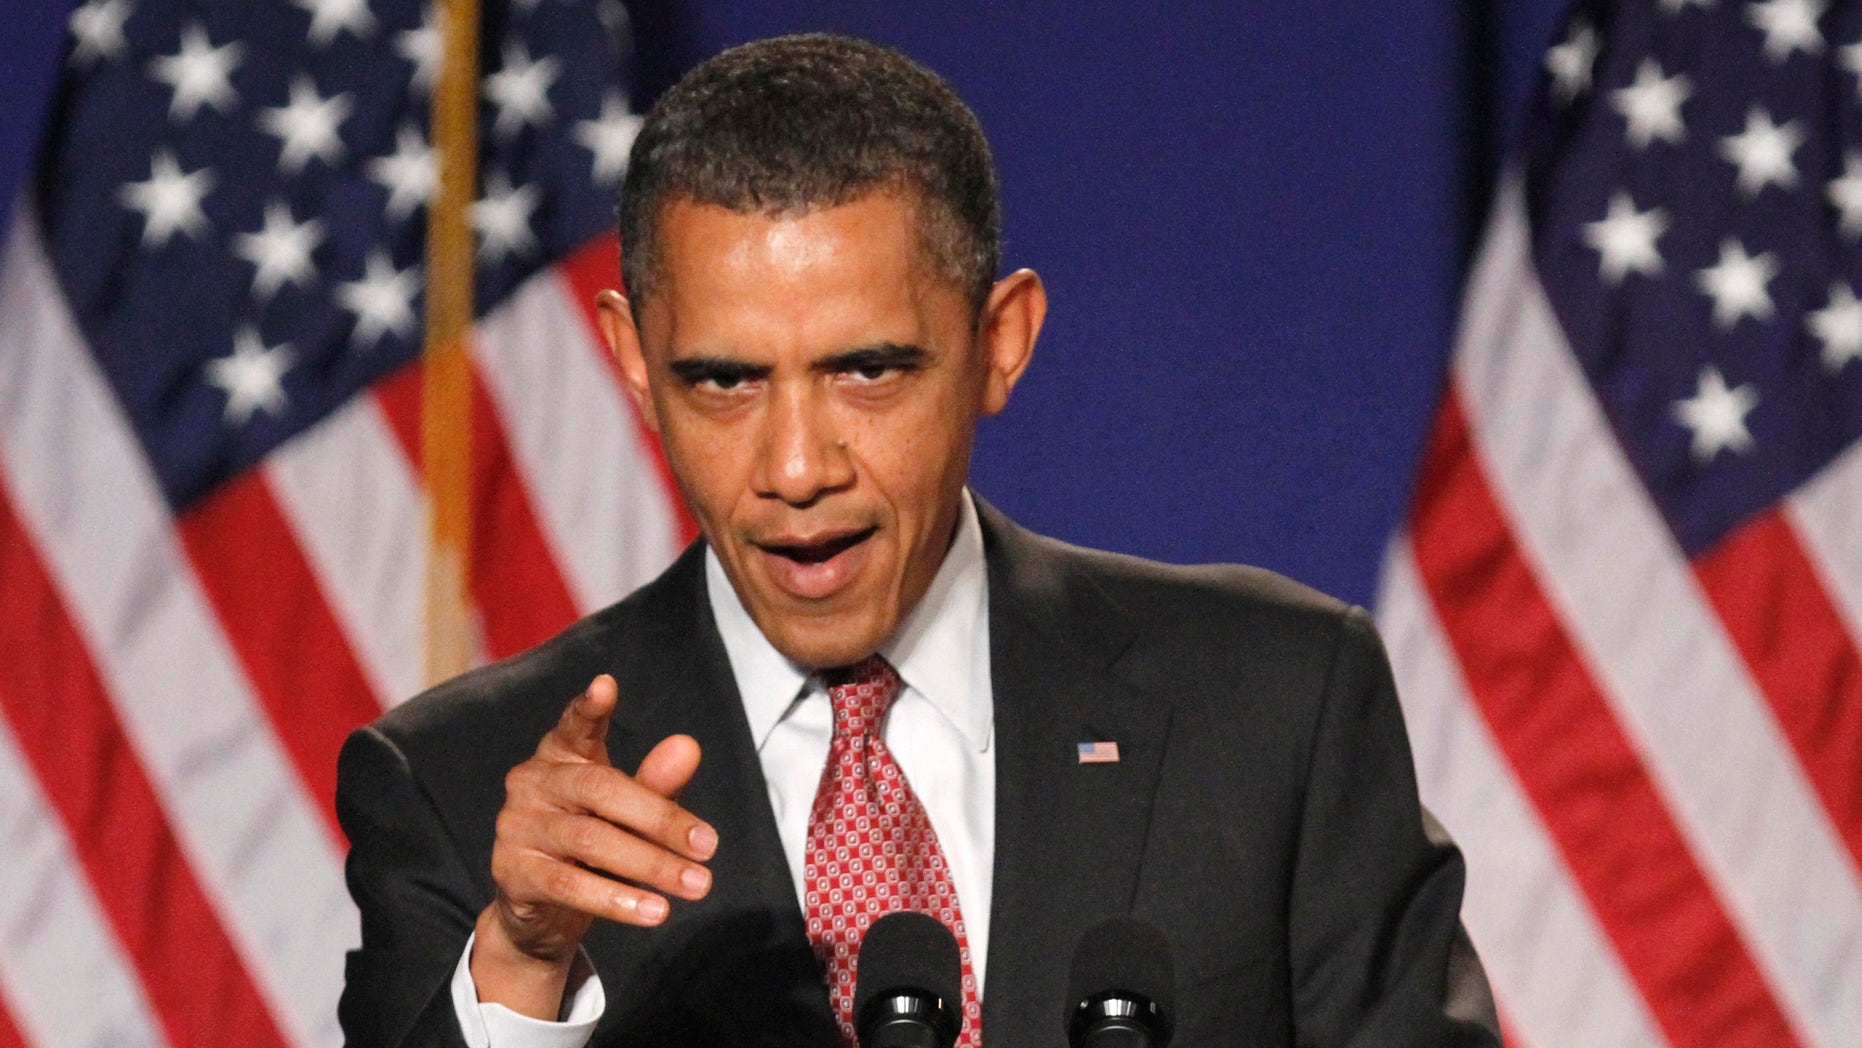 In this photo taken Friday, Sept. 16, 2011, President Barack Obama gestures while speaking in Alexandria, Va.